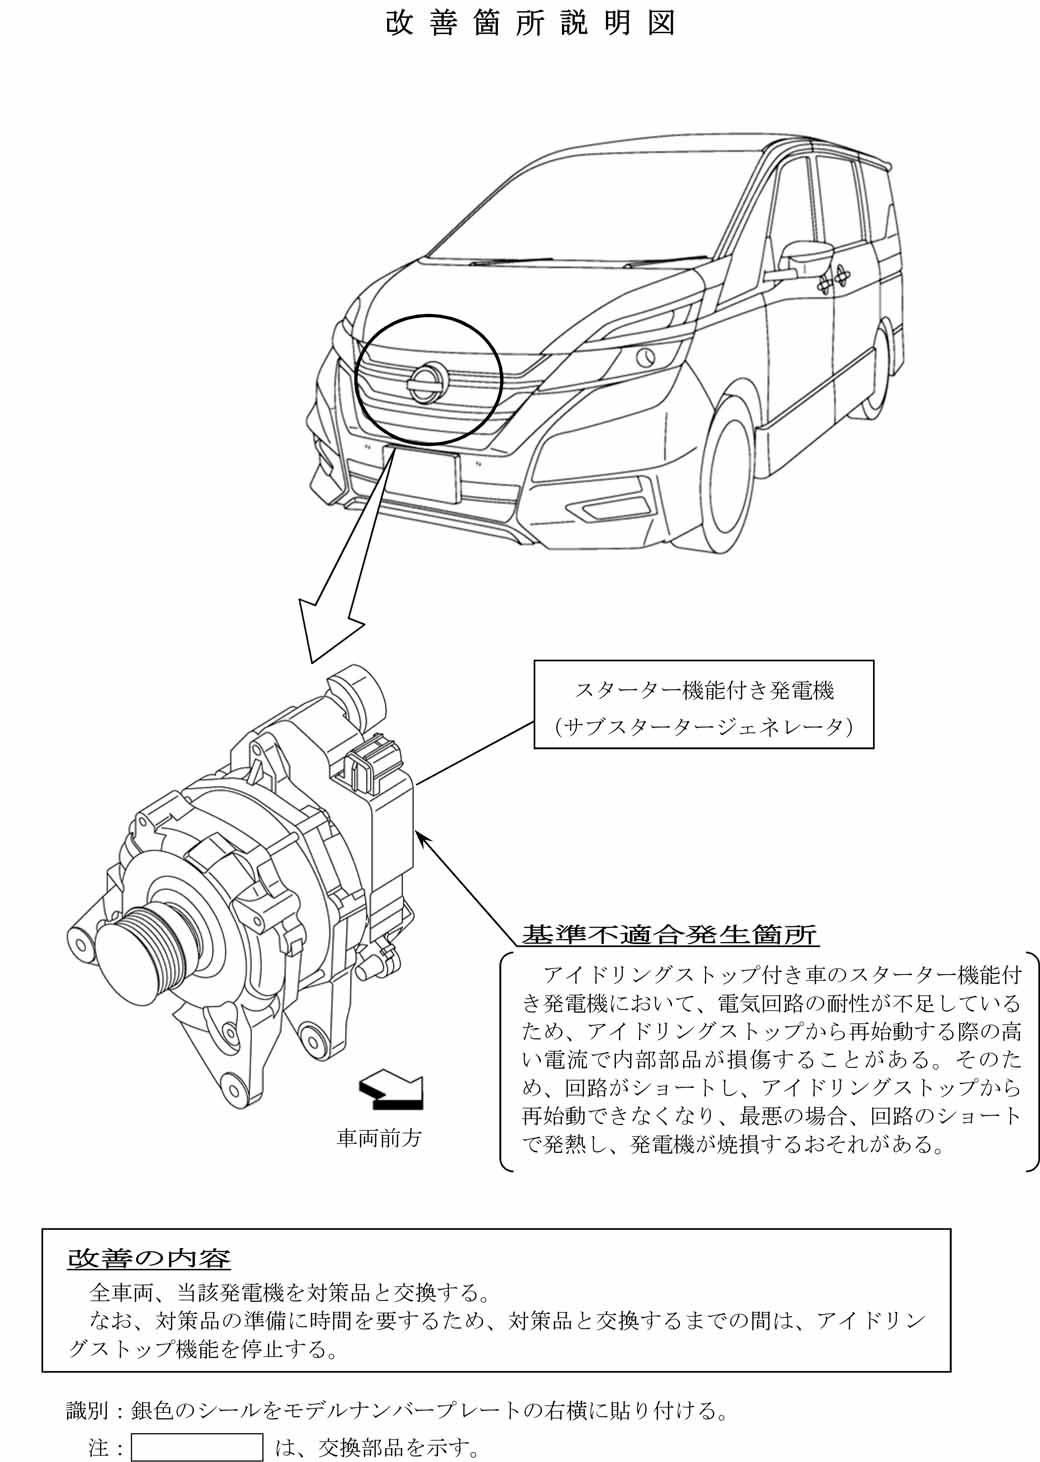 nissan-serena-notification-of-the-recall-failure-of-the-generator-sub-starter-generator-a-total-of-9-481-units20160907-2